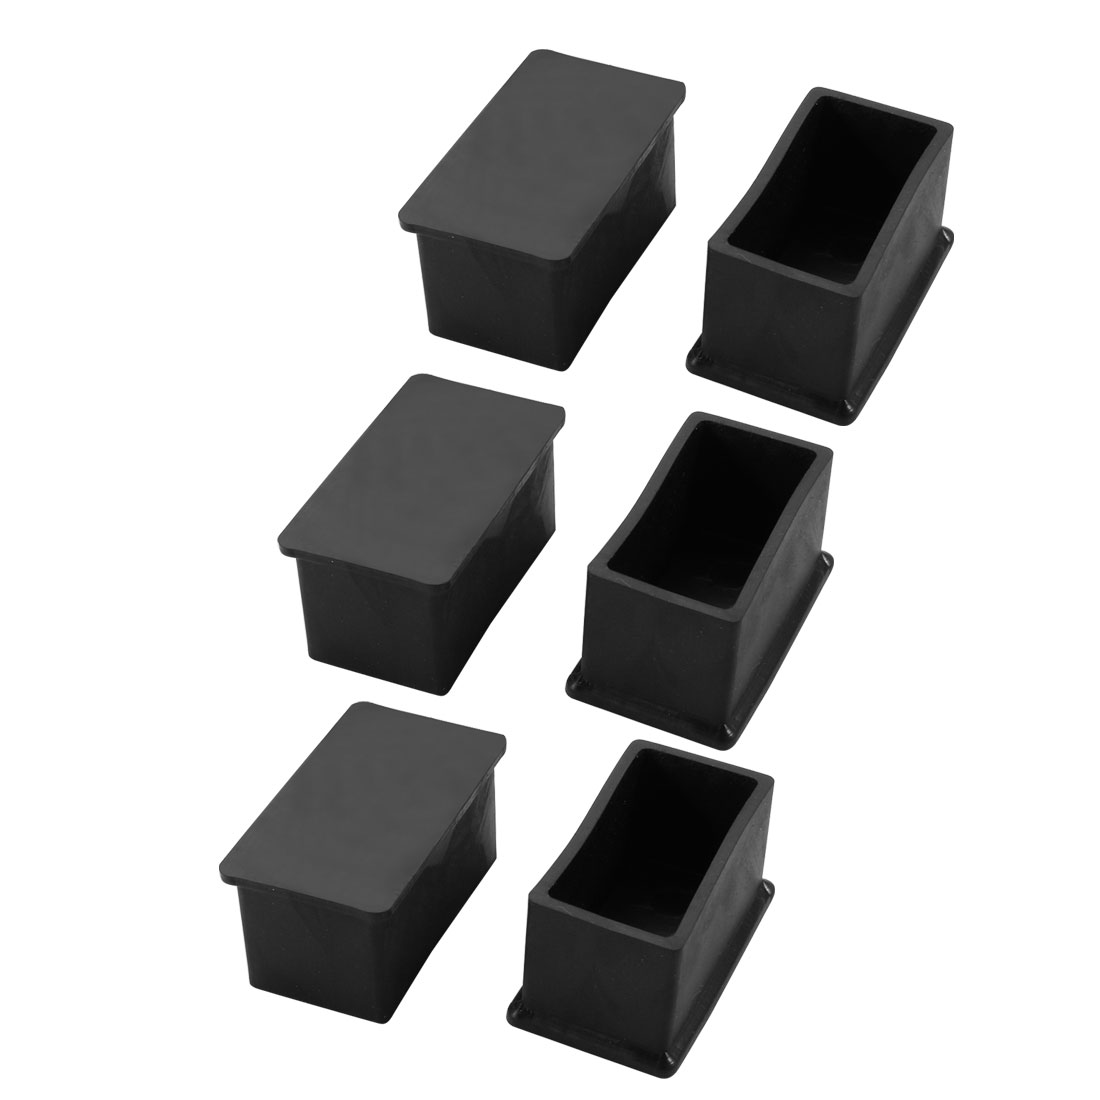 6pcs 25x48mm Black PVC Rubber Rectangle Cabinet Leg Insert Cover Protector